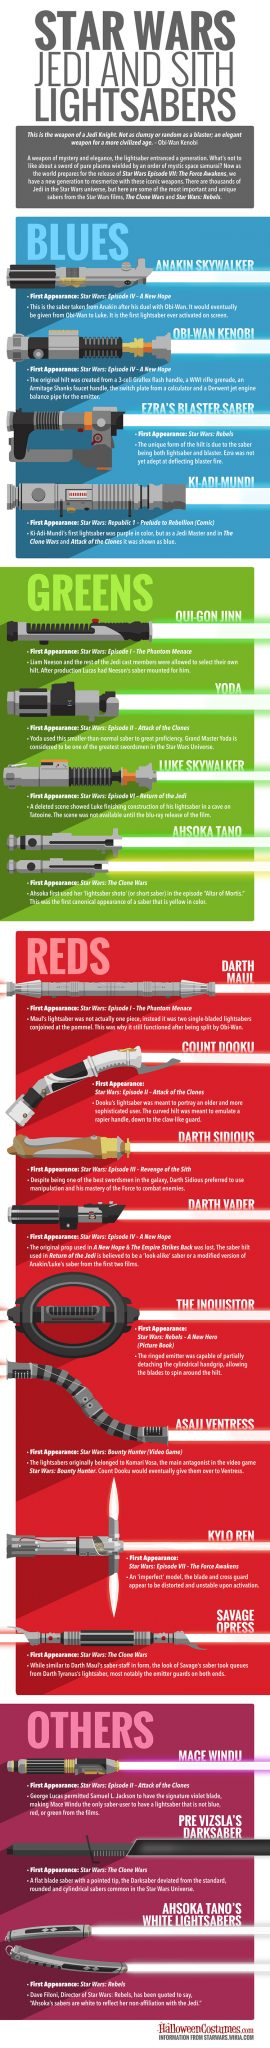 Star Wars Jedi & Sith Lightsabers - Infographic